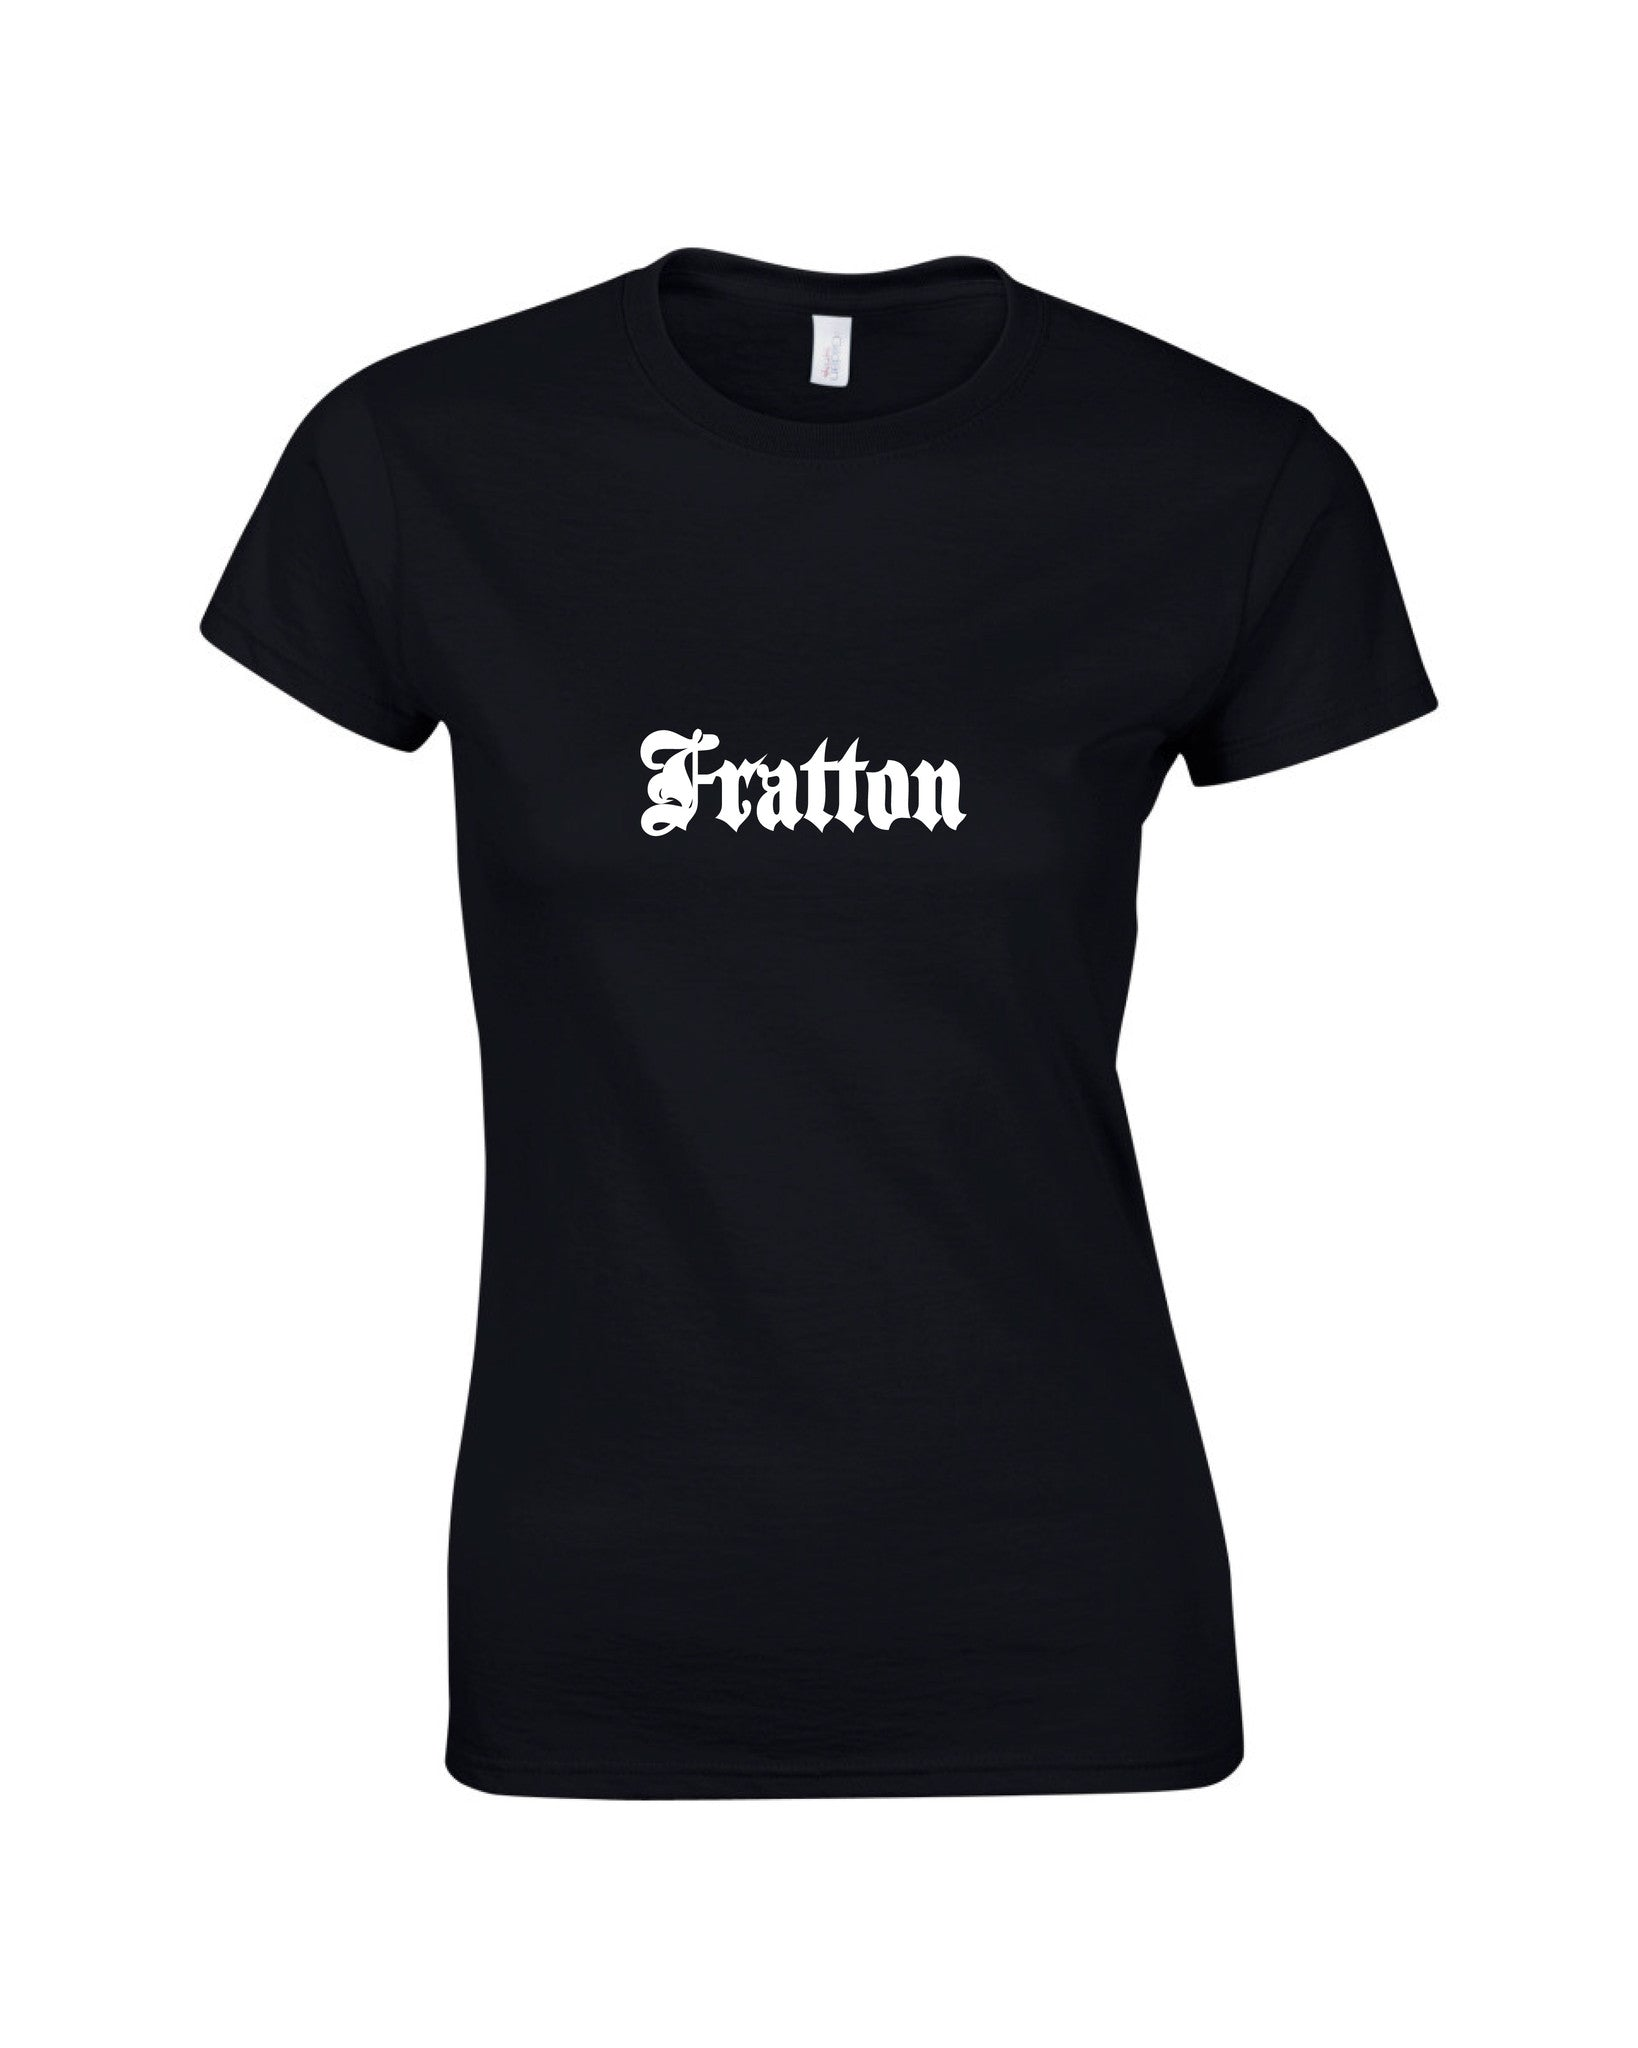 Hillfield Trading Gothic Fratton Ladies T Shirt